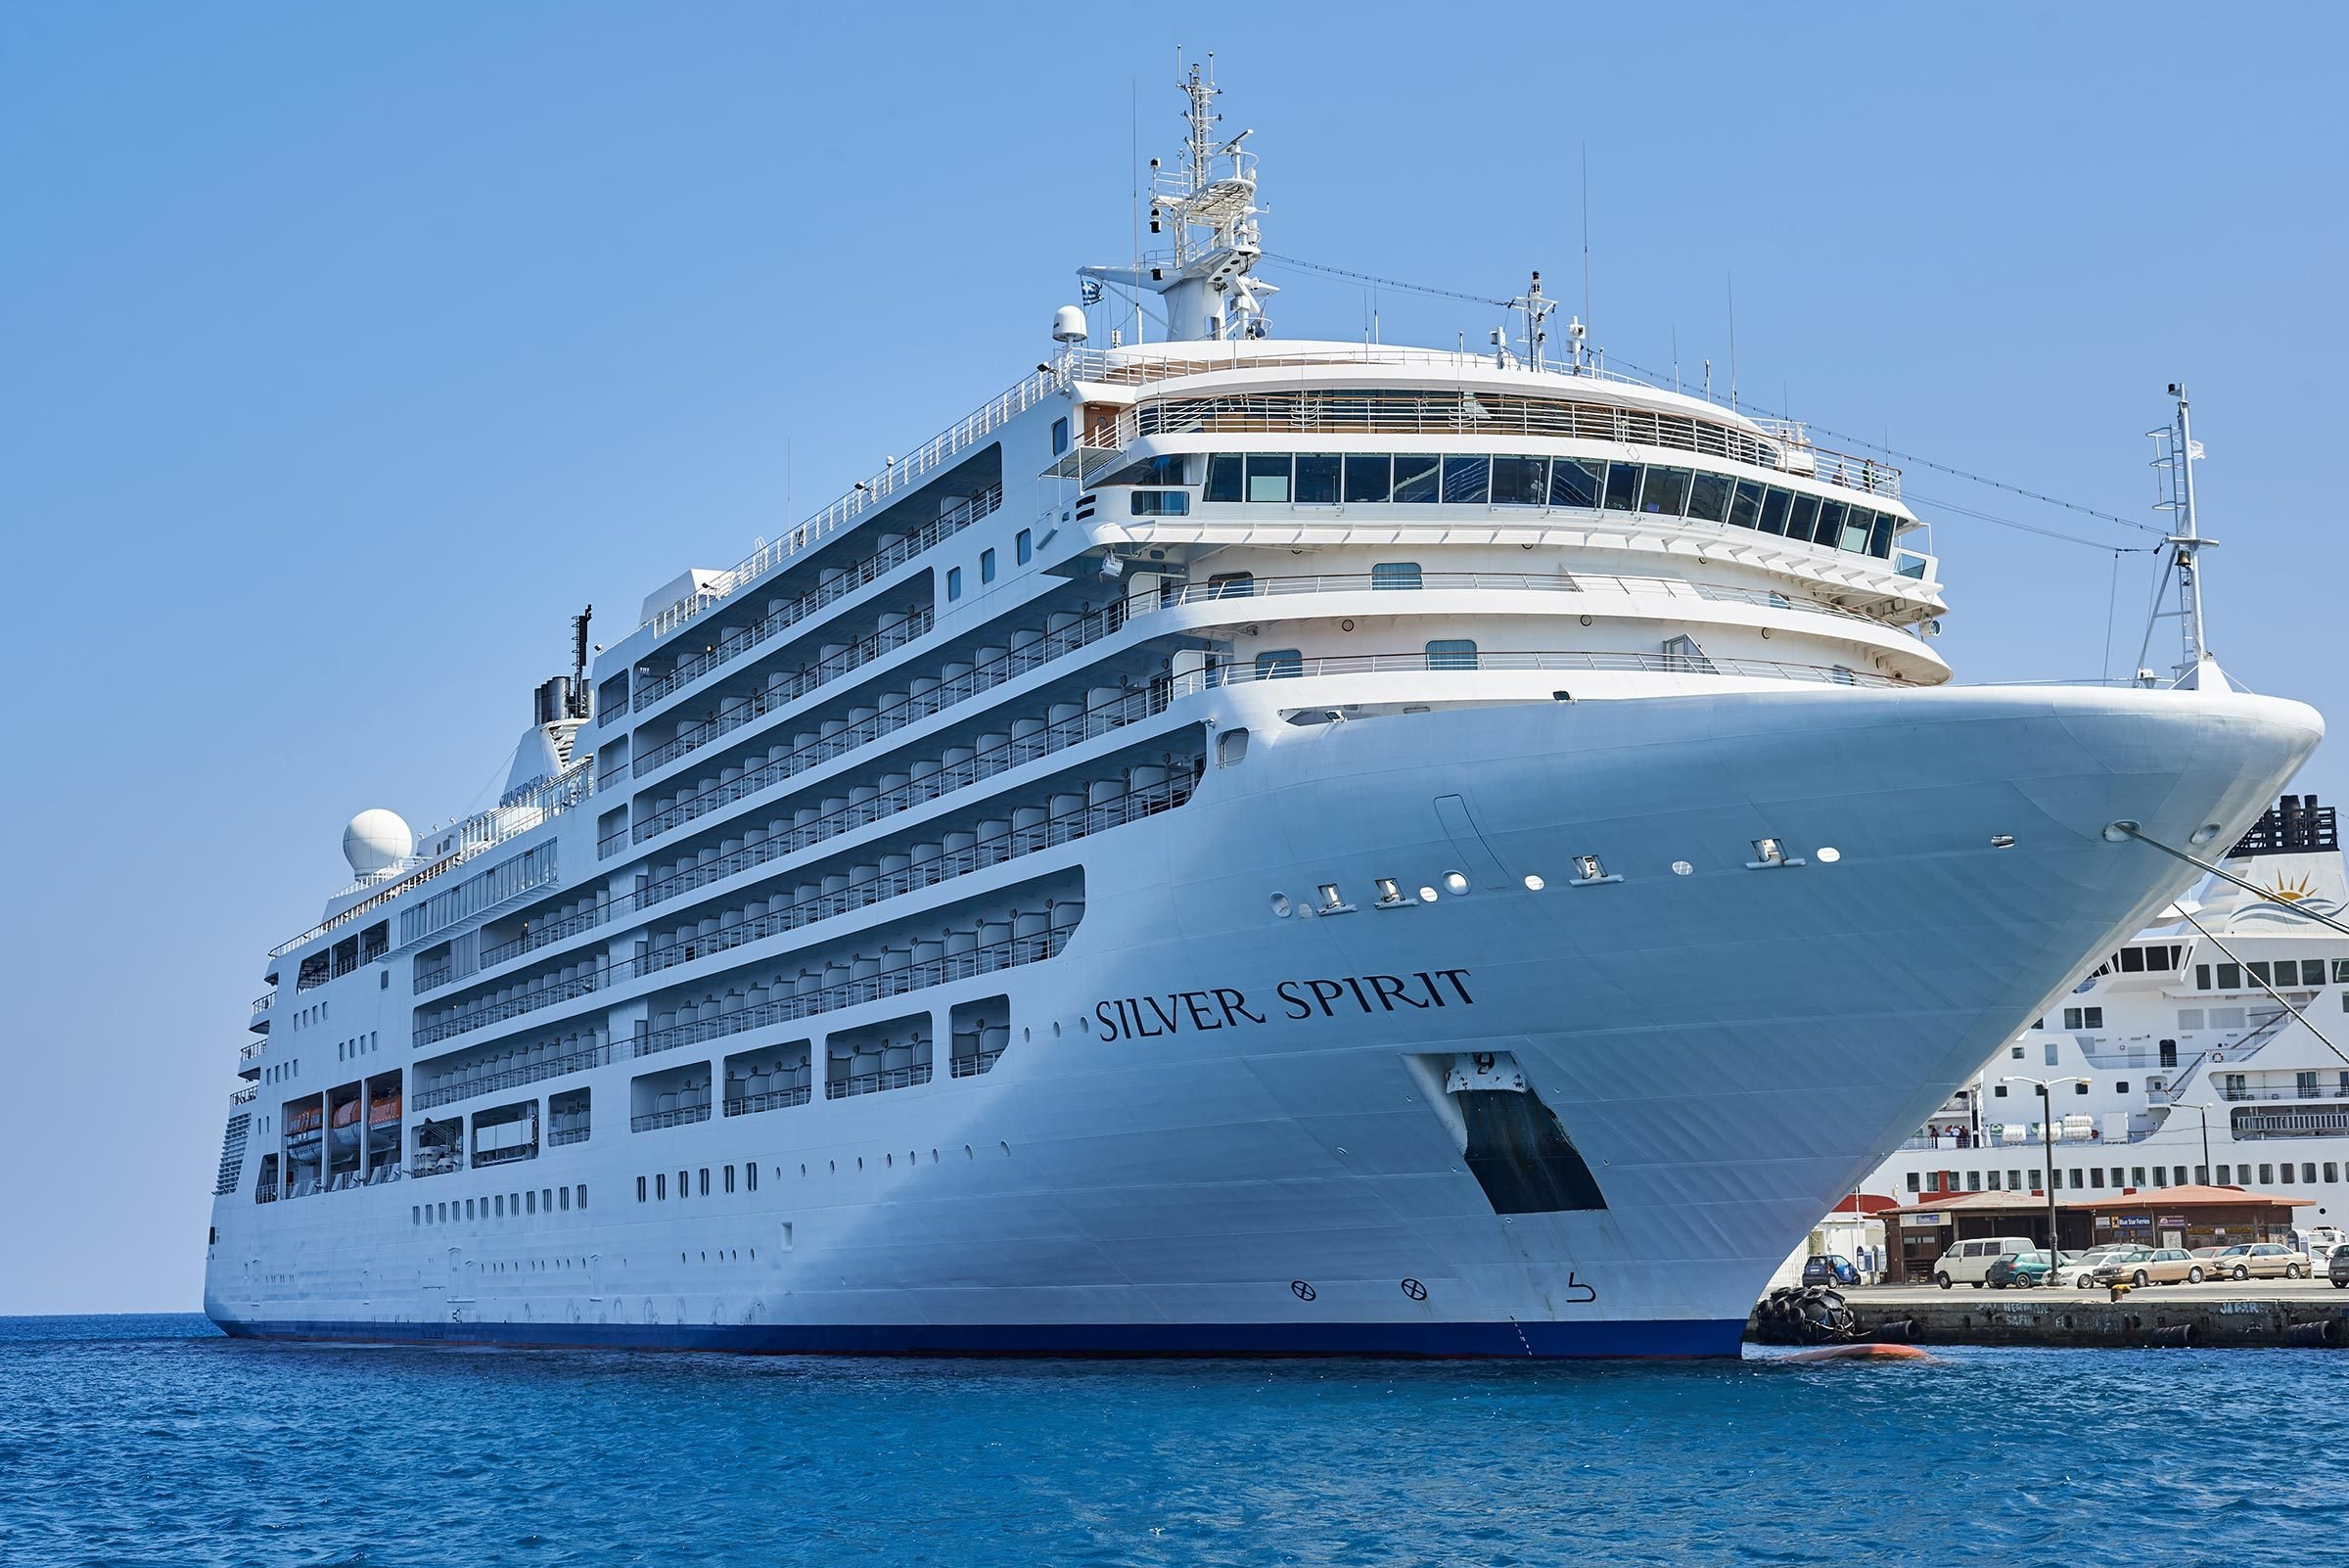 Rhodes Greece - September 1 2014: Silver Spirit Cruise Ship